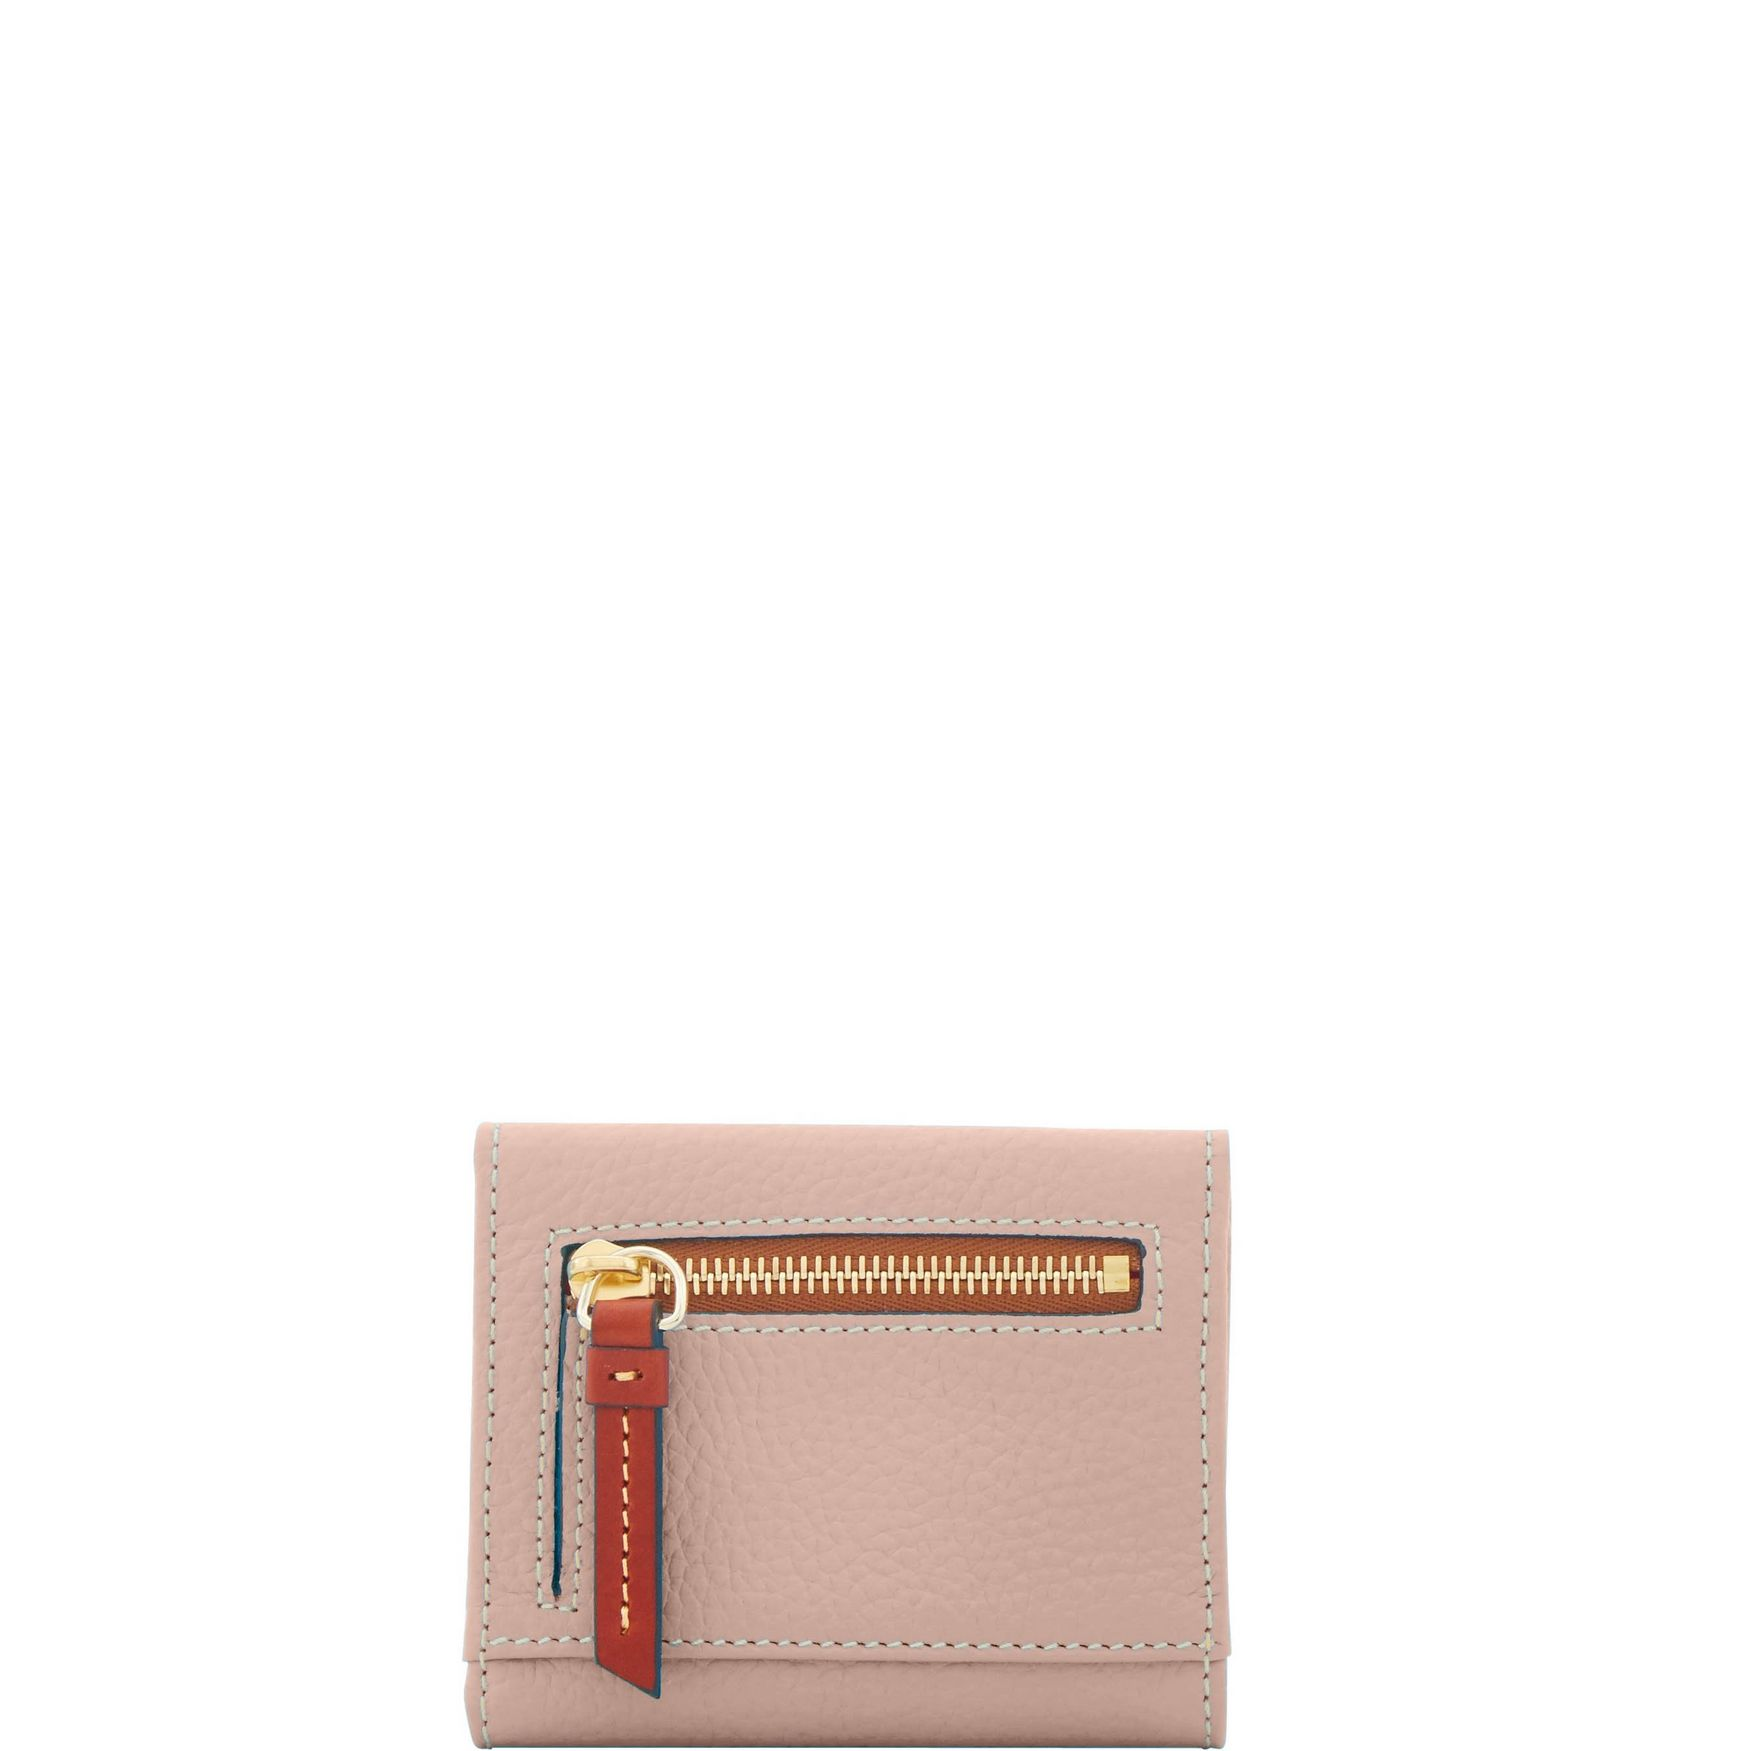 Dooney-amp-Bourke-Pebble-Grain-Small-Flap-Wallet thumbnail 62